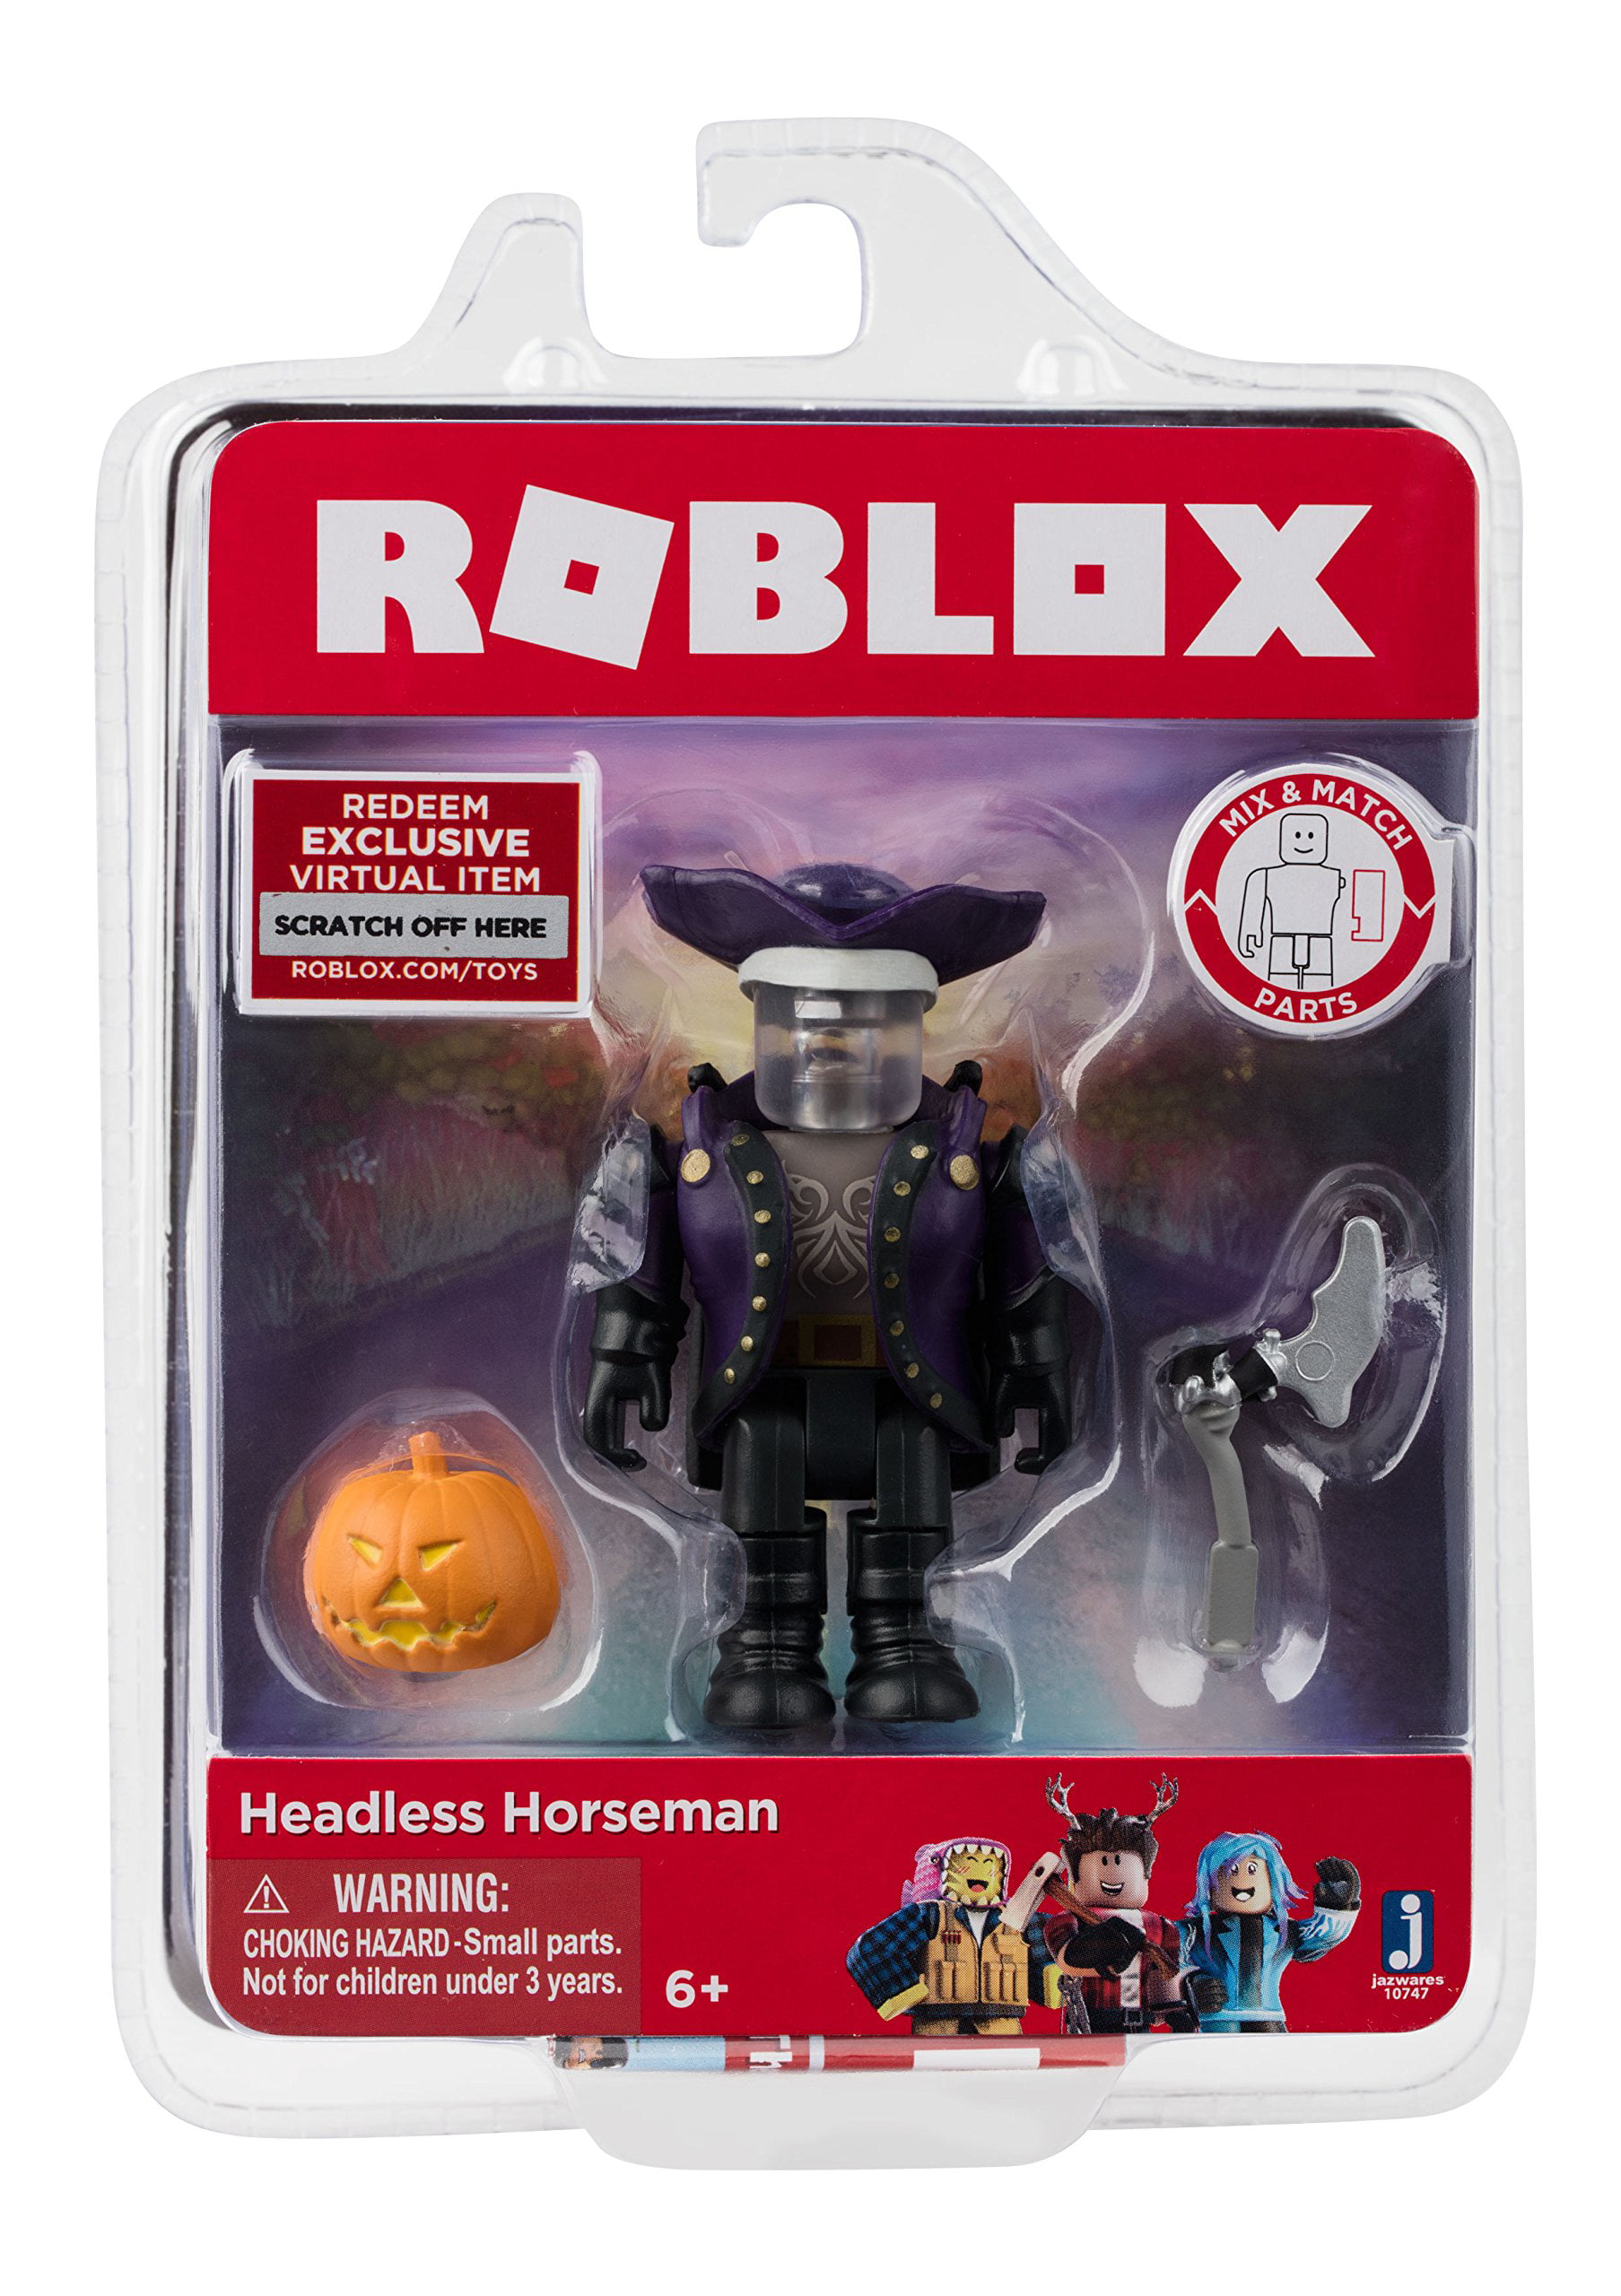 The Headless Head In Roblox Roblox Action Collection Headless Horseman Figure Pack Includes Exclusive Virtual Item Walmart Com Walmart Com